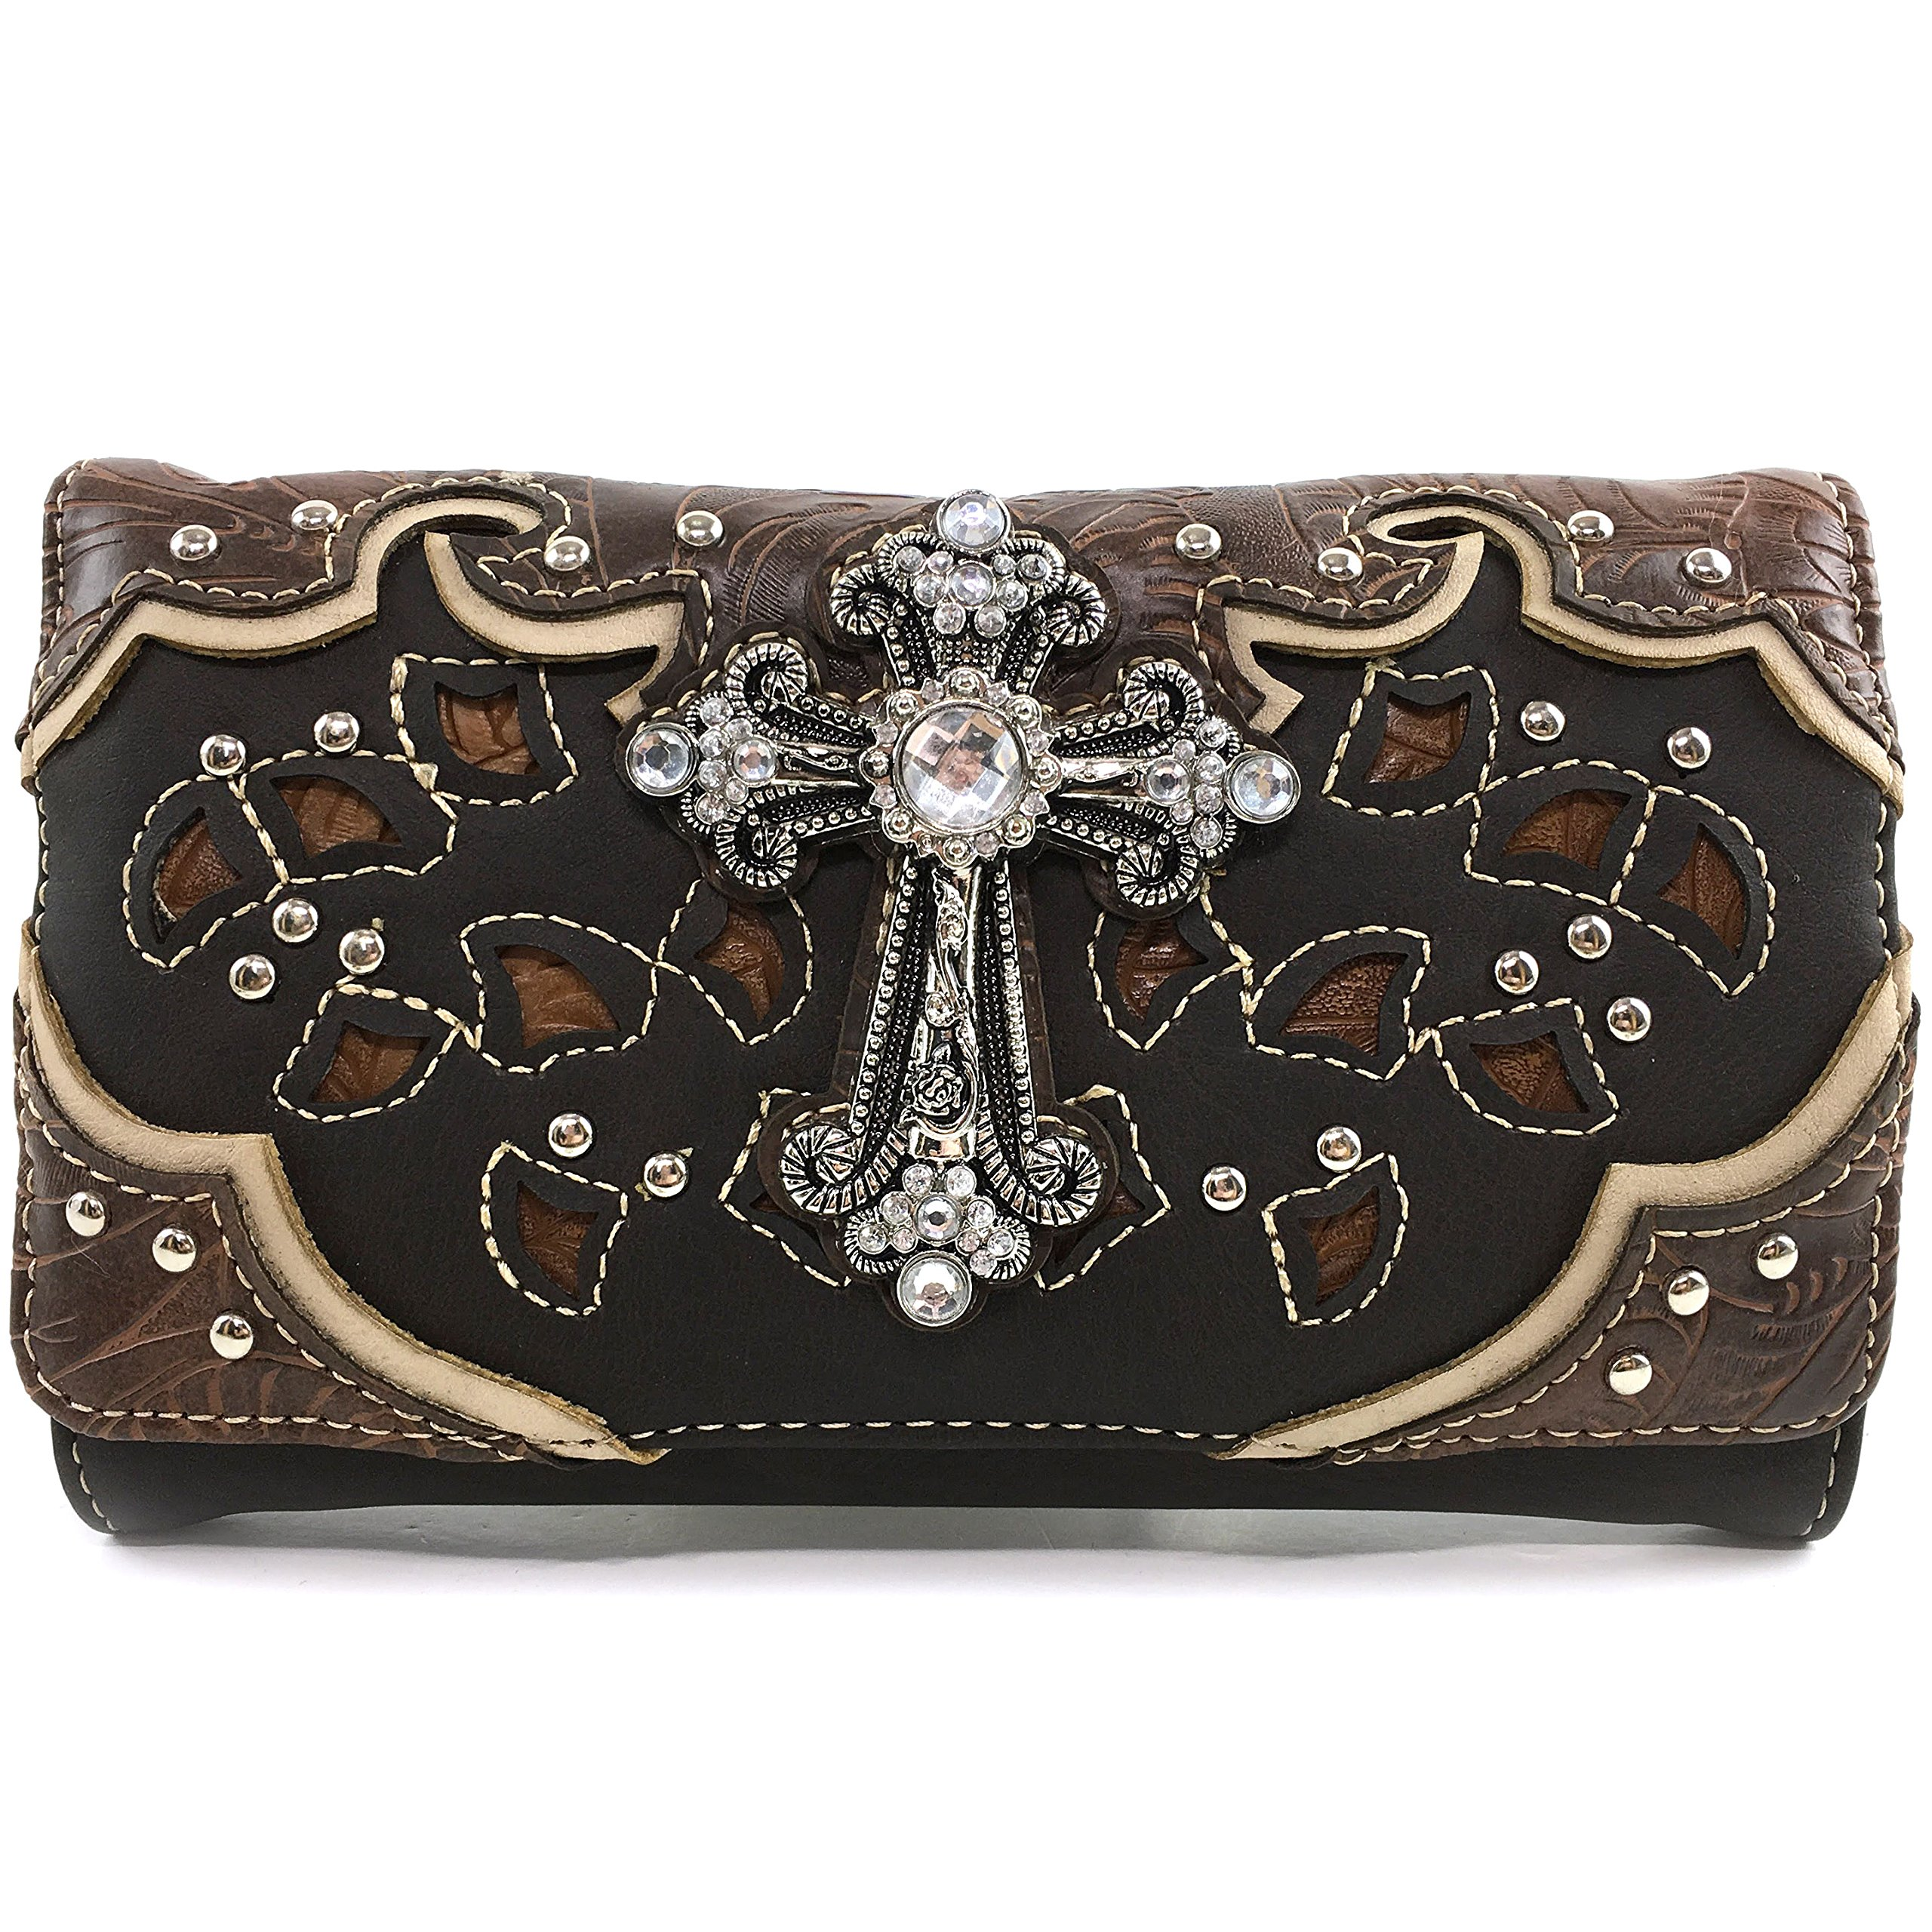 Justin West Tooled Leather Laser Cut Rhinestone Cross Studded Shoulder Concealed Carry Tote Style Handbag Purse (Brown Wallet)